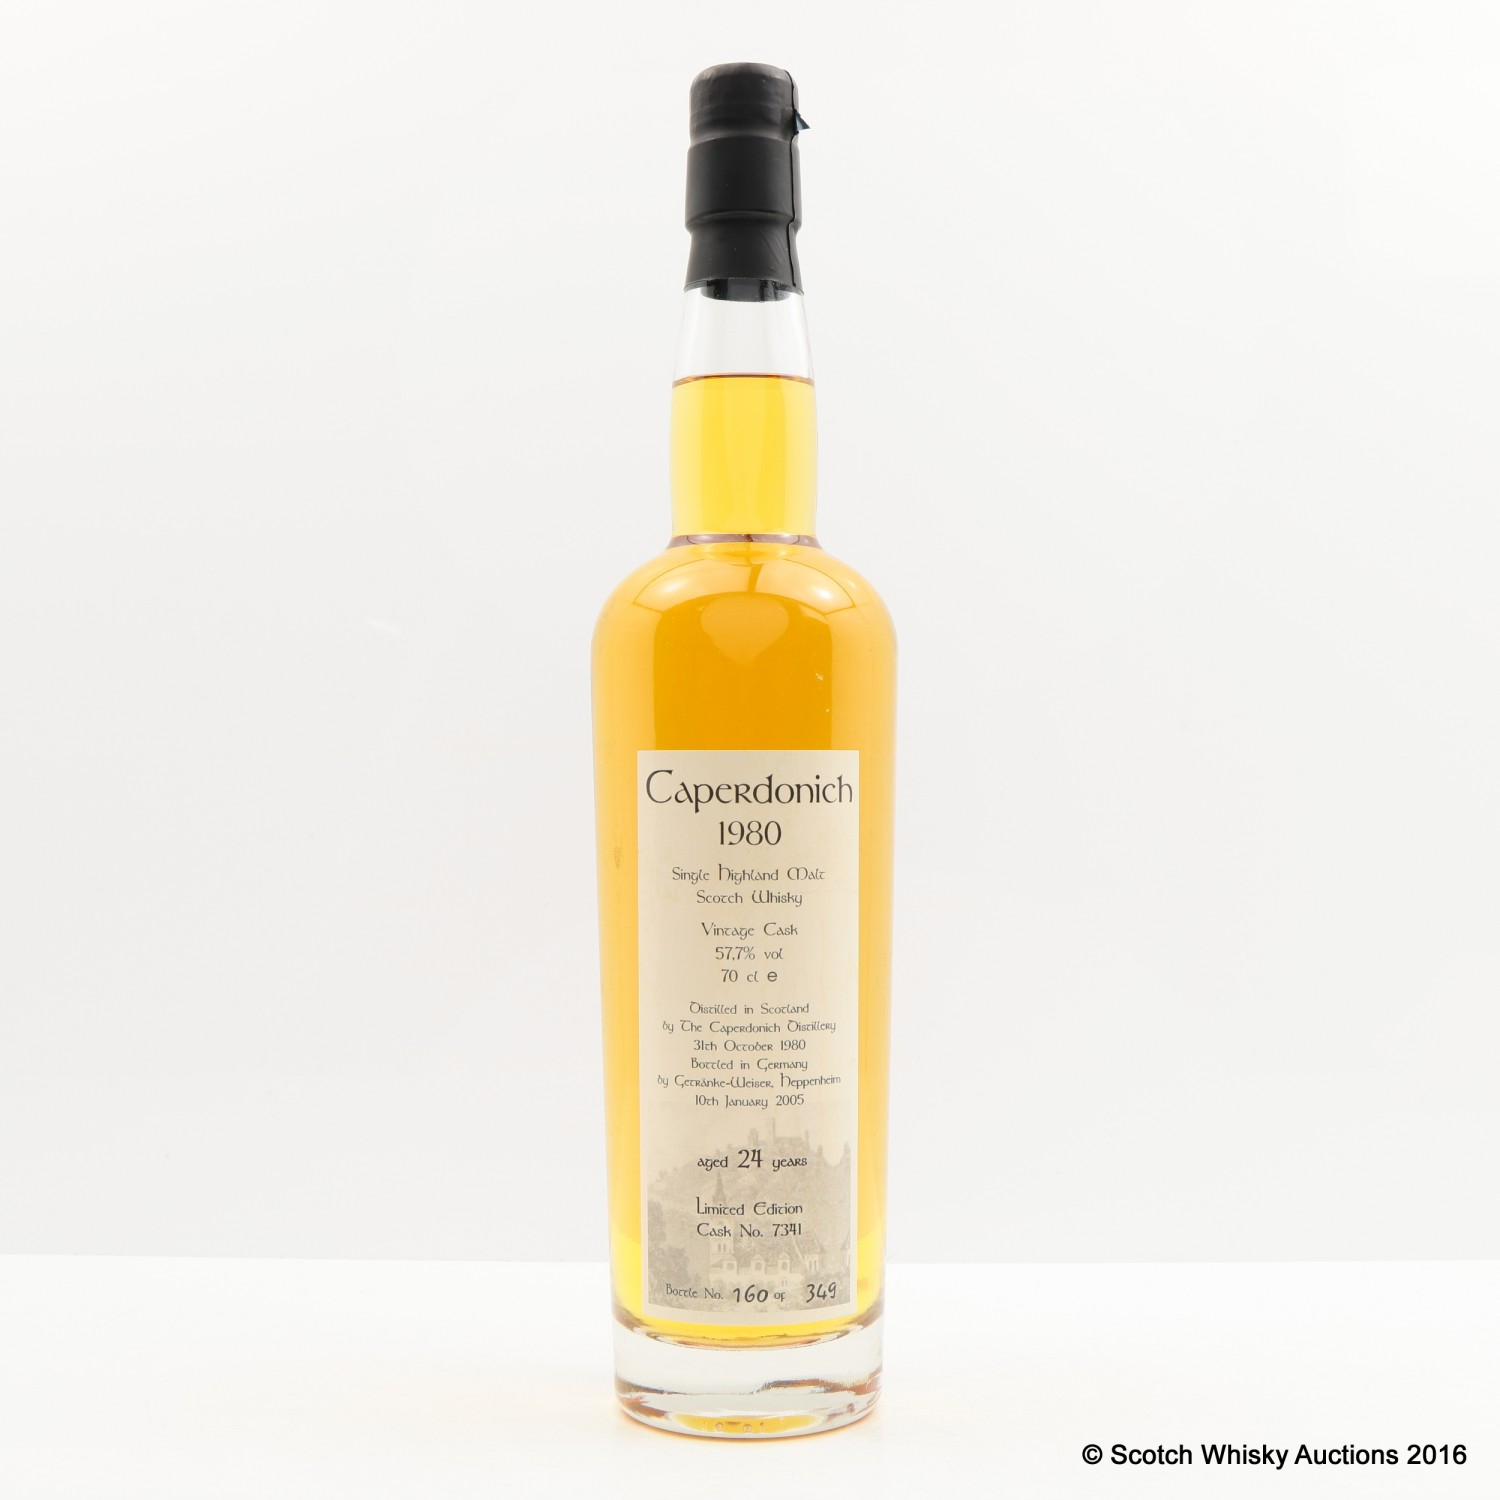 Scotch Whisky Auctions | The 71st Auction | Caperdonich 1980 24 Year ...